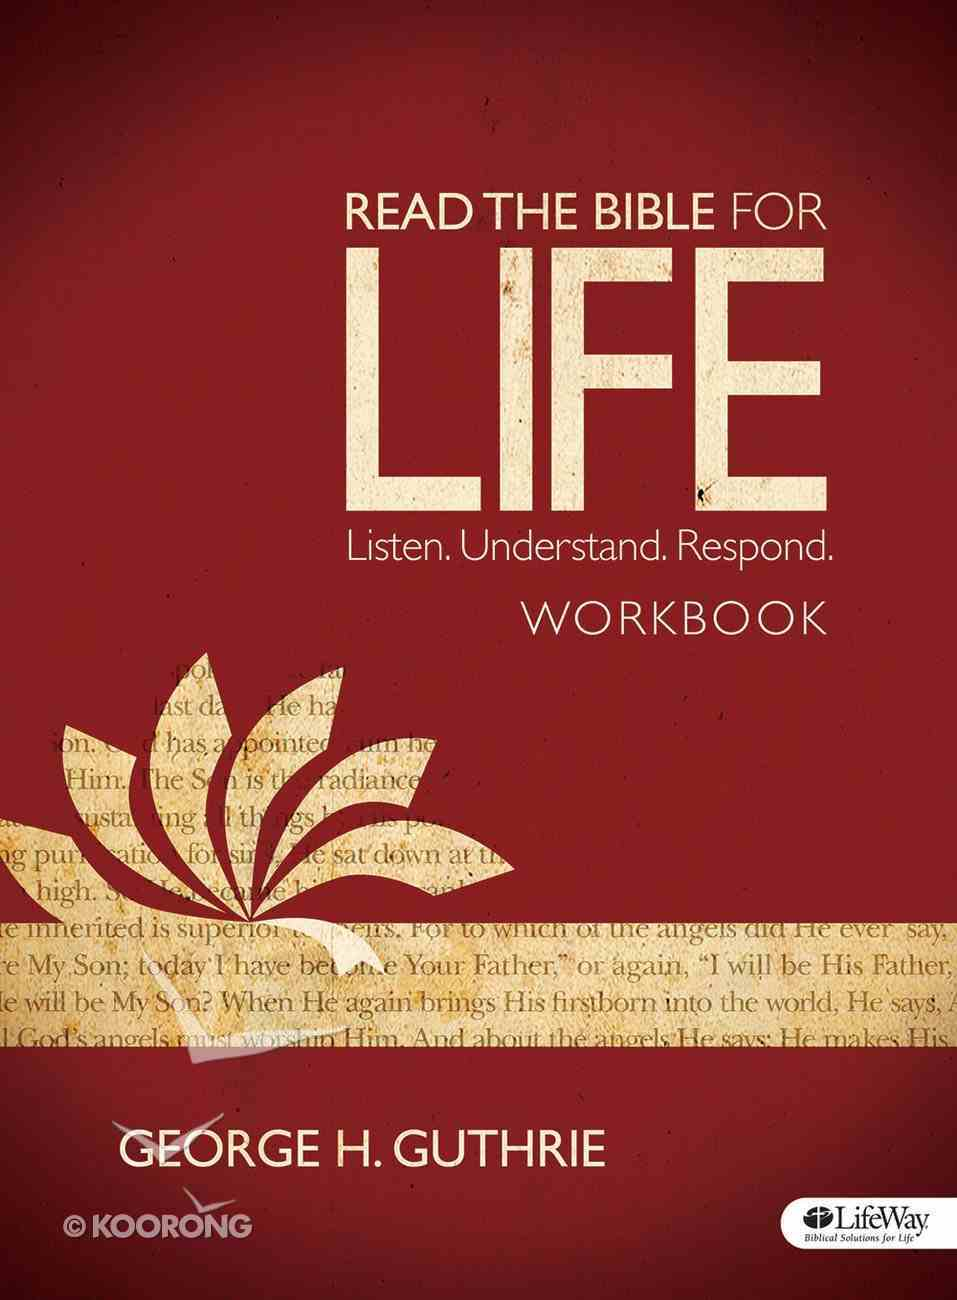 Read the Bible For Life (Workbook) Paperback